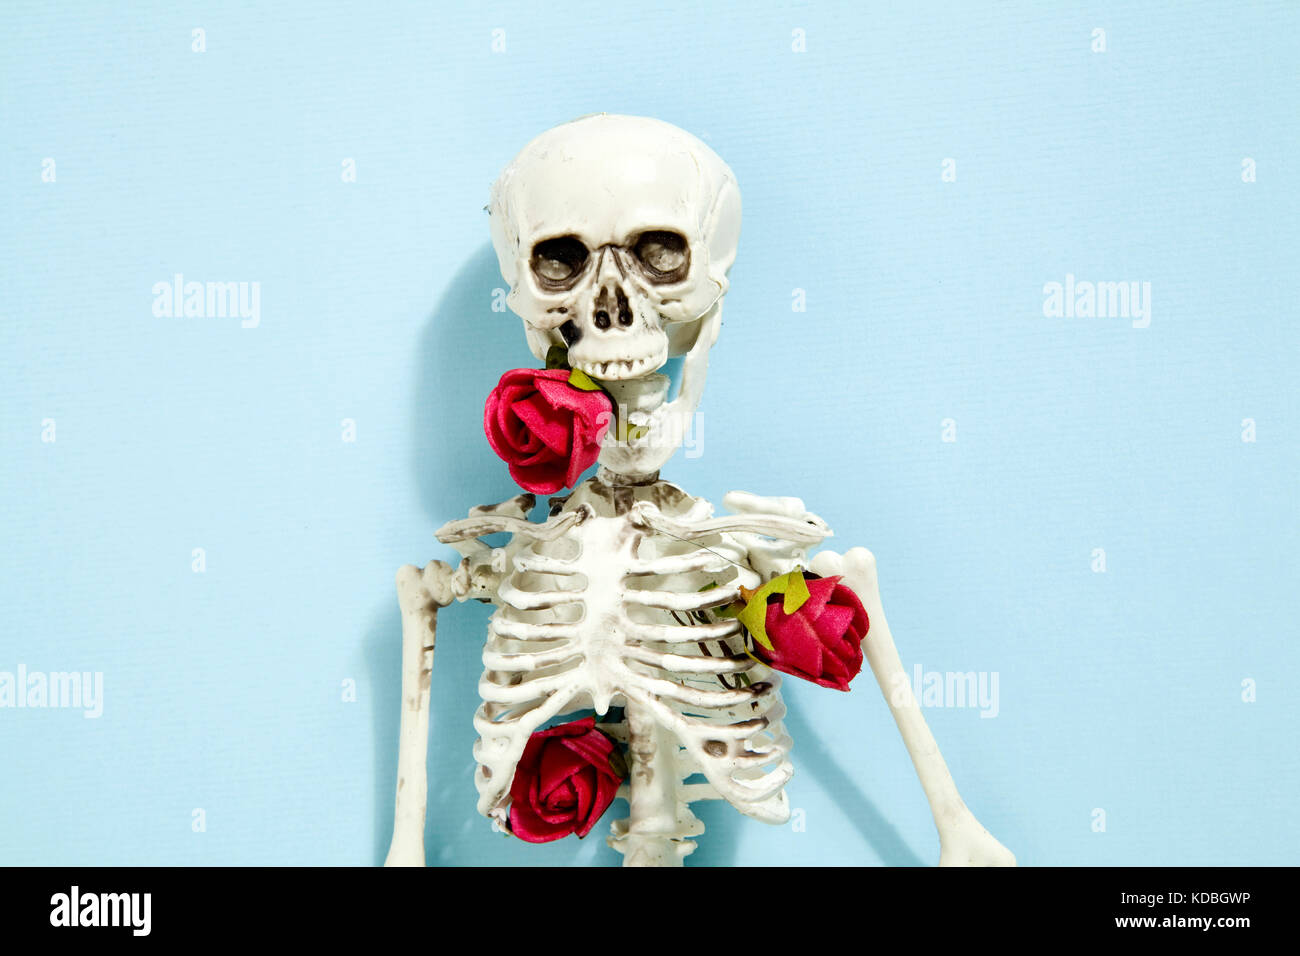 Isolated plastic toy skeleton with red roses between bones on a vibrant pop blue turquoise background. Minimal color Stock Photo